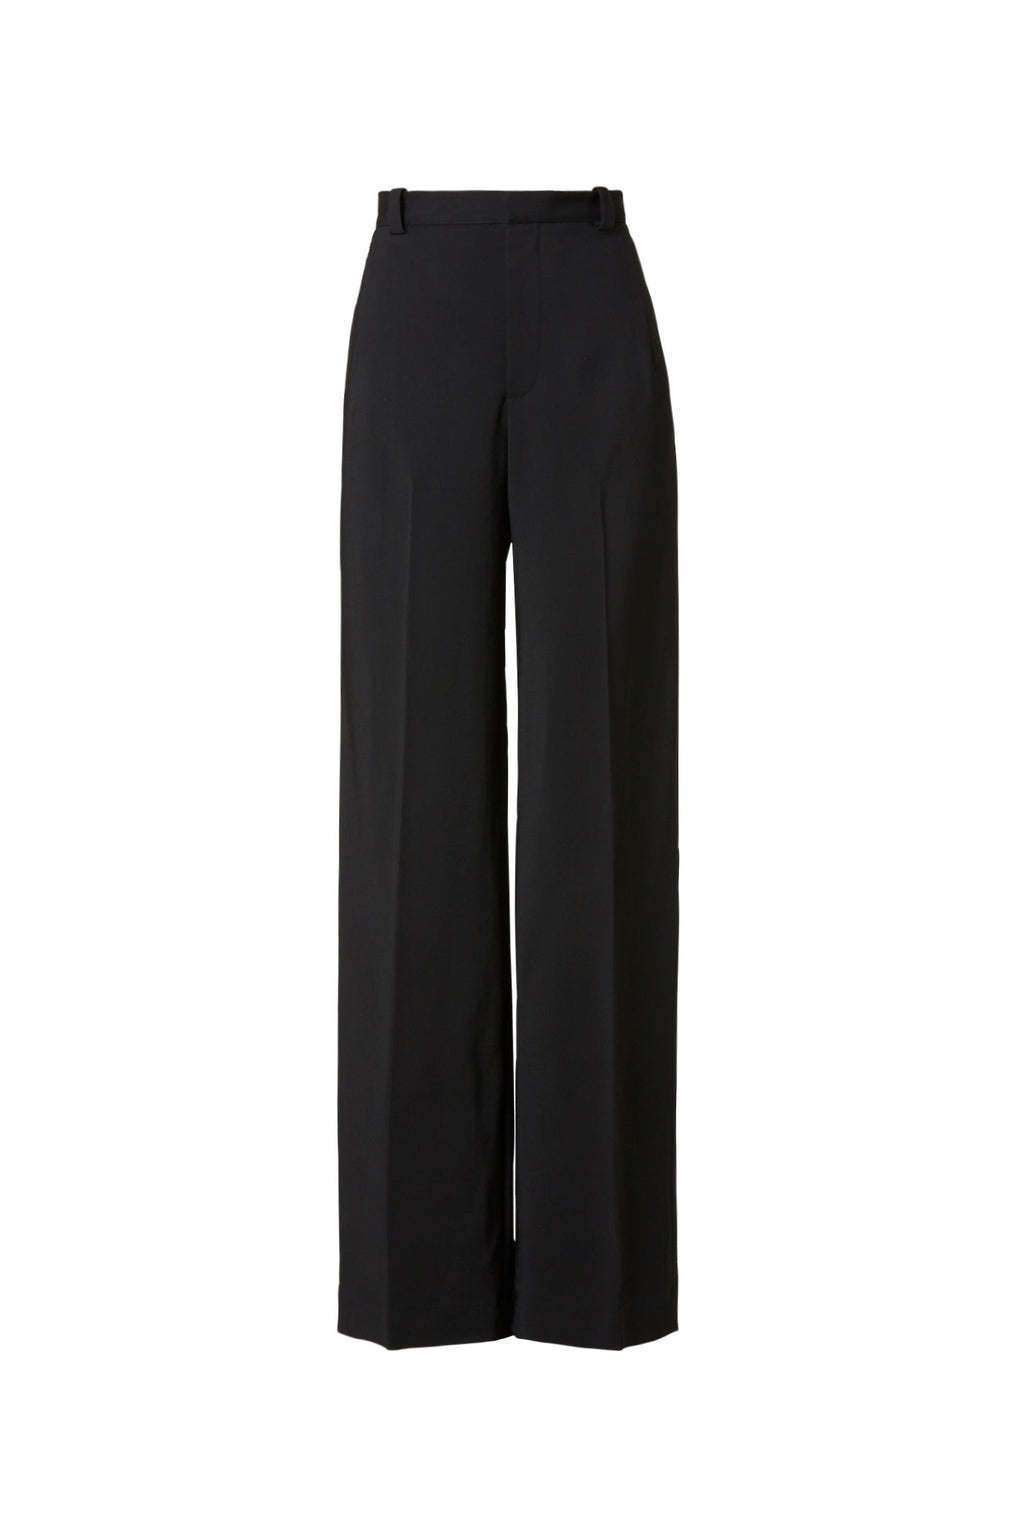 TAILORED WIDE LEG TROUSER